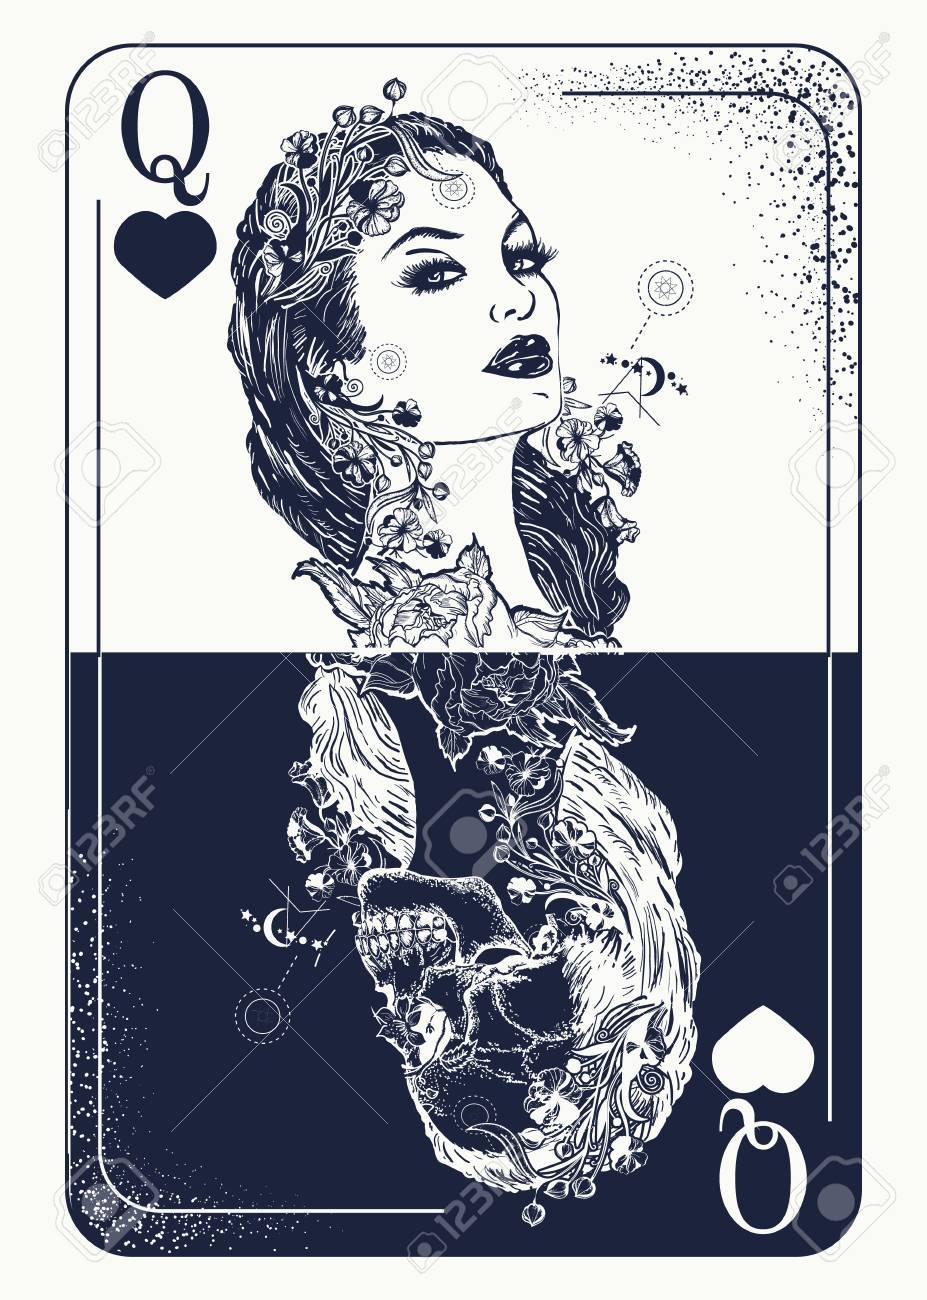 Queen Playing Card Tattoo And T Shirt Design Beautiful Girl